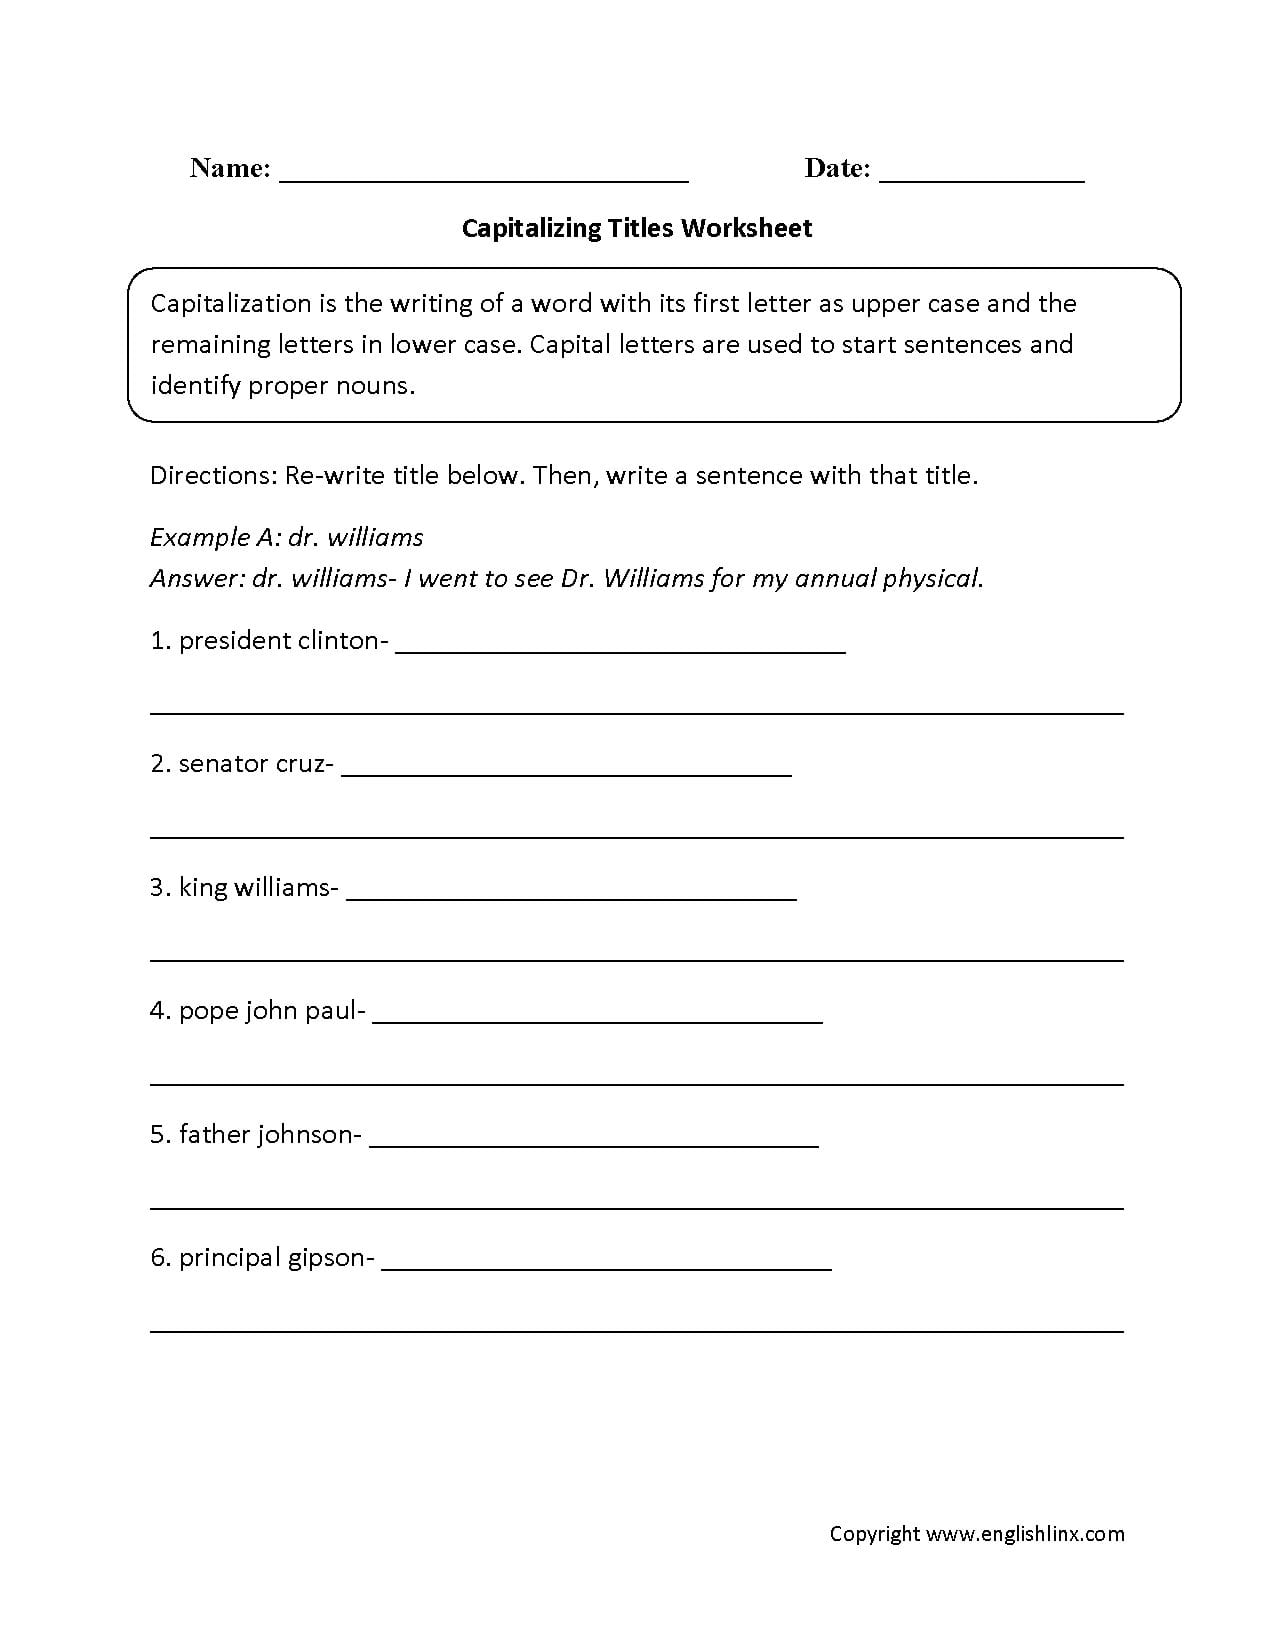 englishlinx capitalization worksheets together with free printable itbs practice worksheets - Should Kindergarten Be Capitalized